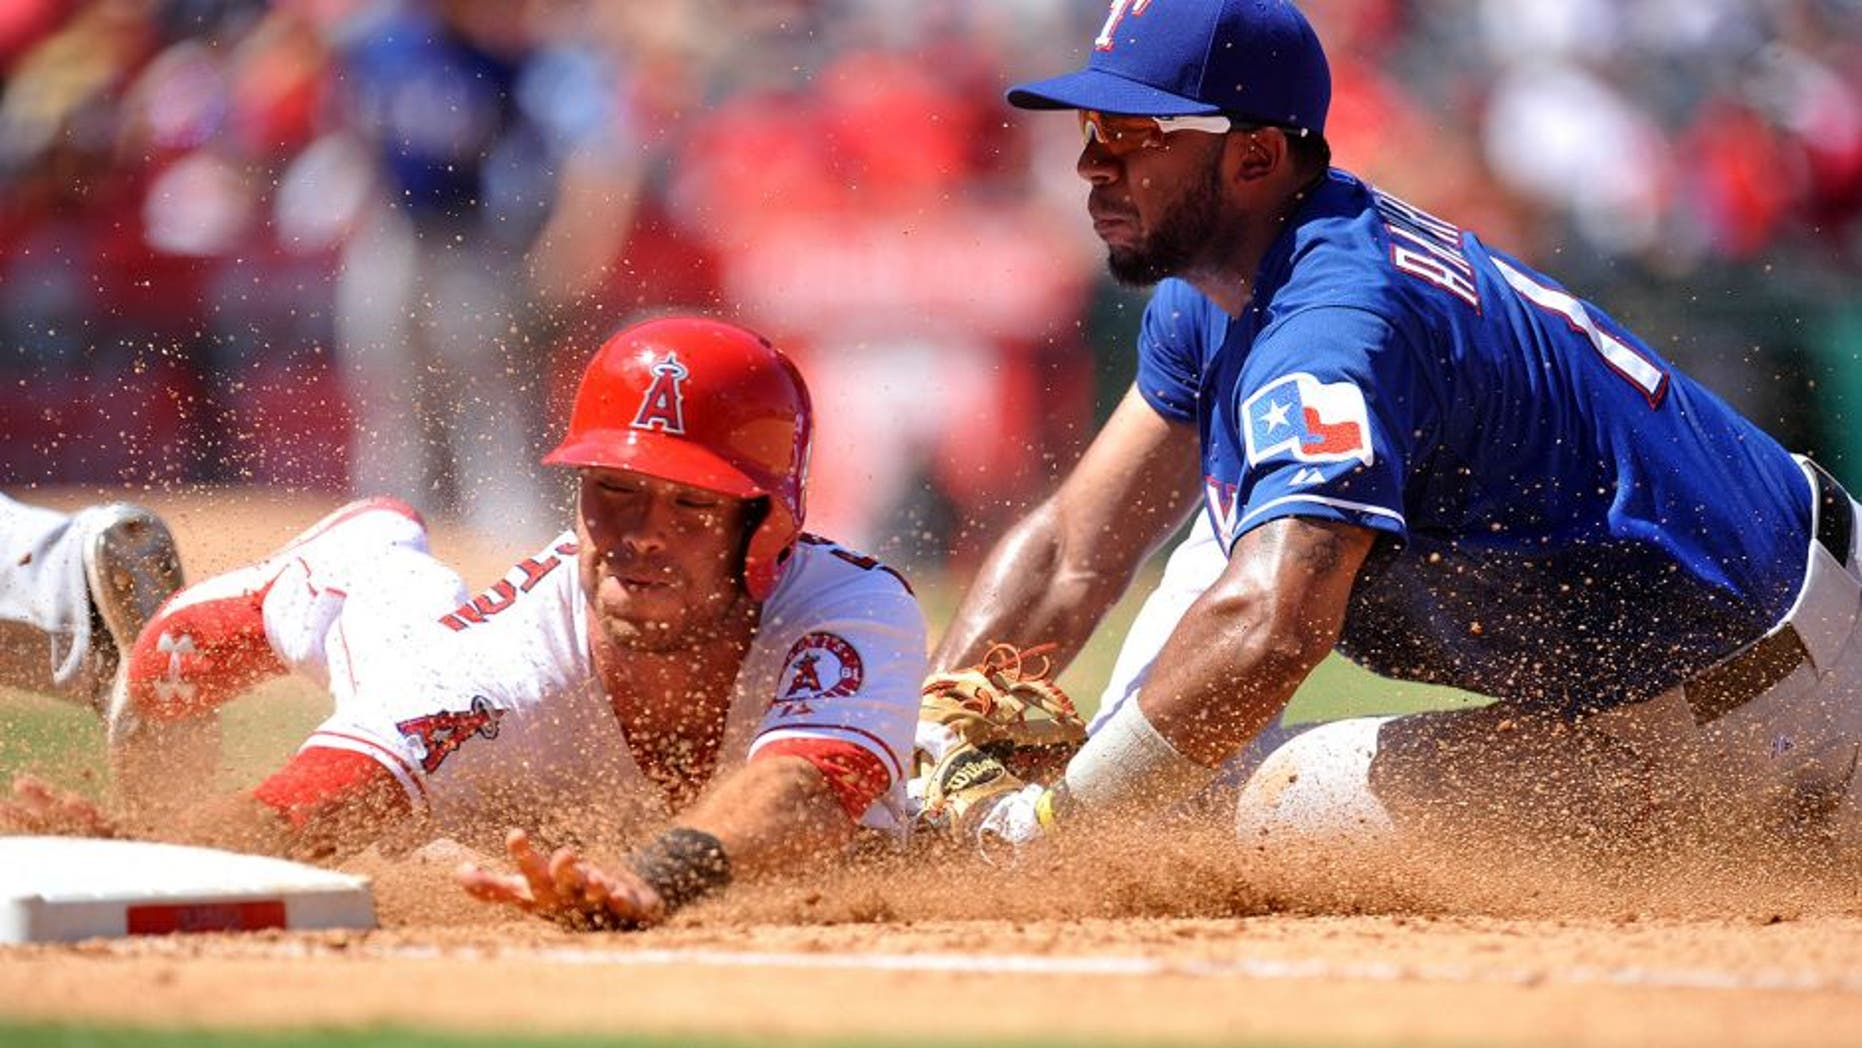 September 6, 2015; Anaheim, CA, USA; Los Angeles Angels third baseman Taylor Featherston (8) is tagged out at first after trying to steal second against Texas Rangers shortstop Elvis Andrus (1) in the fourth inning at Angel Stadium of Anaheim. Mandatory Credit: Gary A. Vasquez-USA TODAY Sports